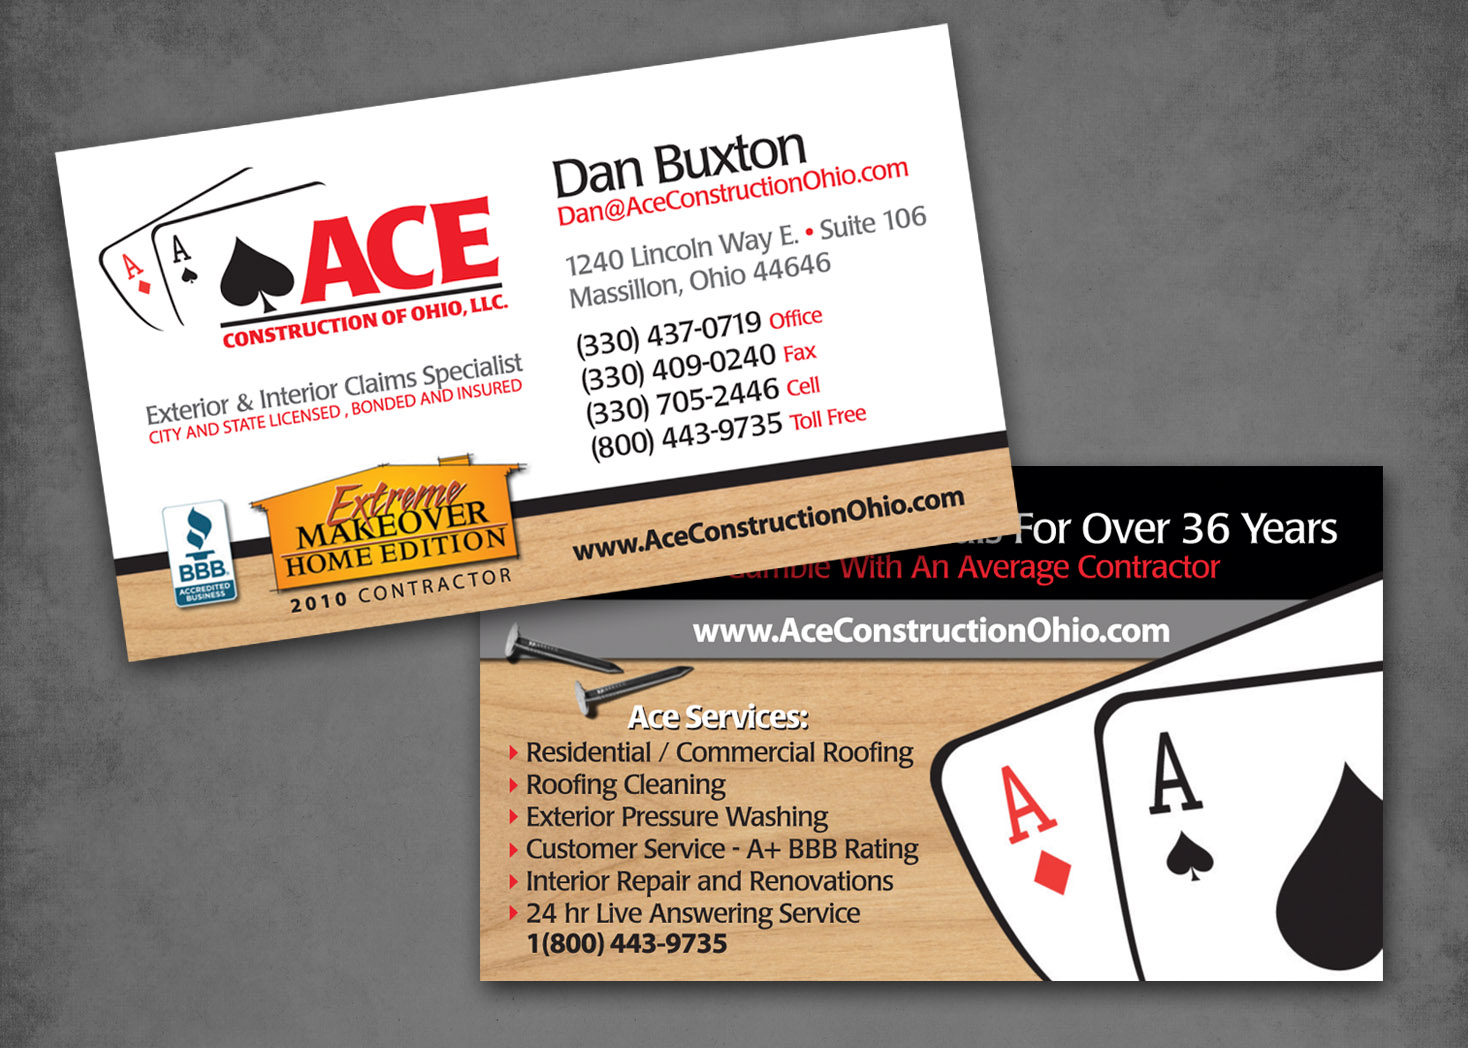 Ace construction business card design les lehman website design ace construction business card design print and visual graphic design reheart Image collections